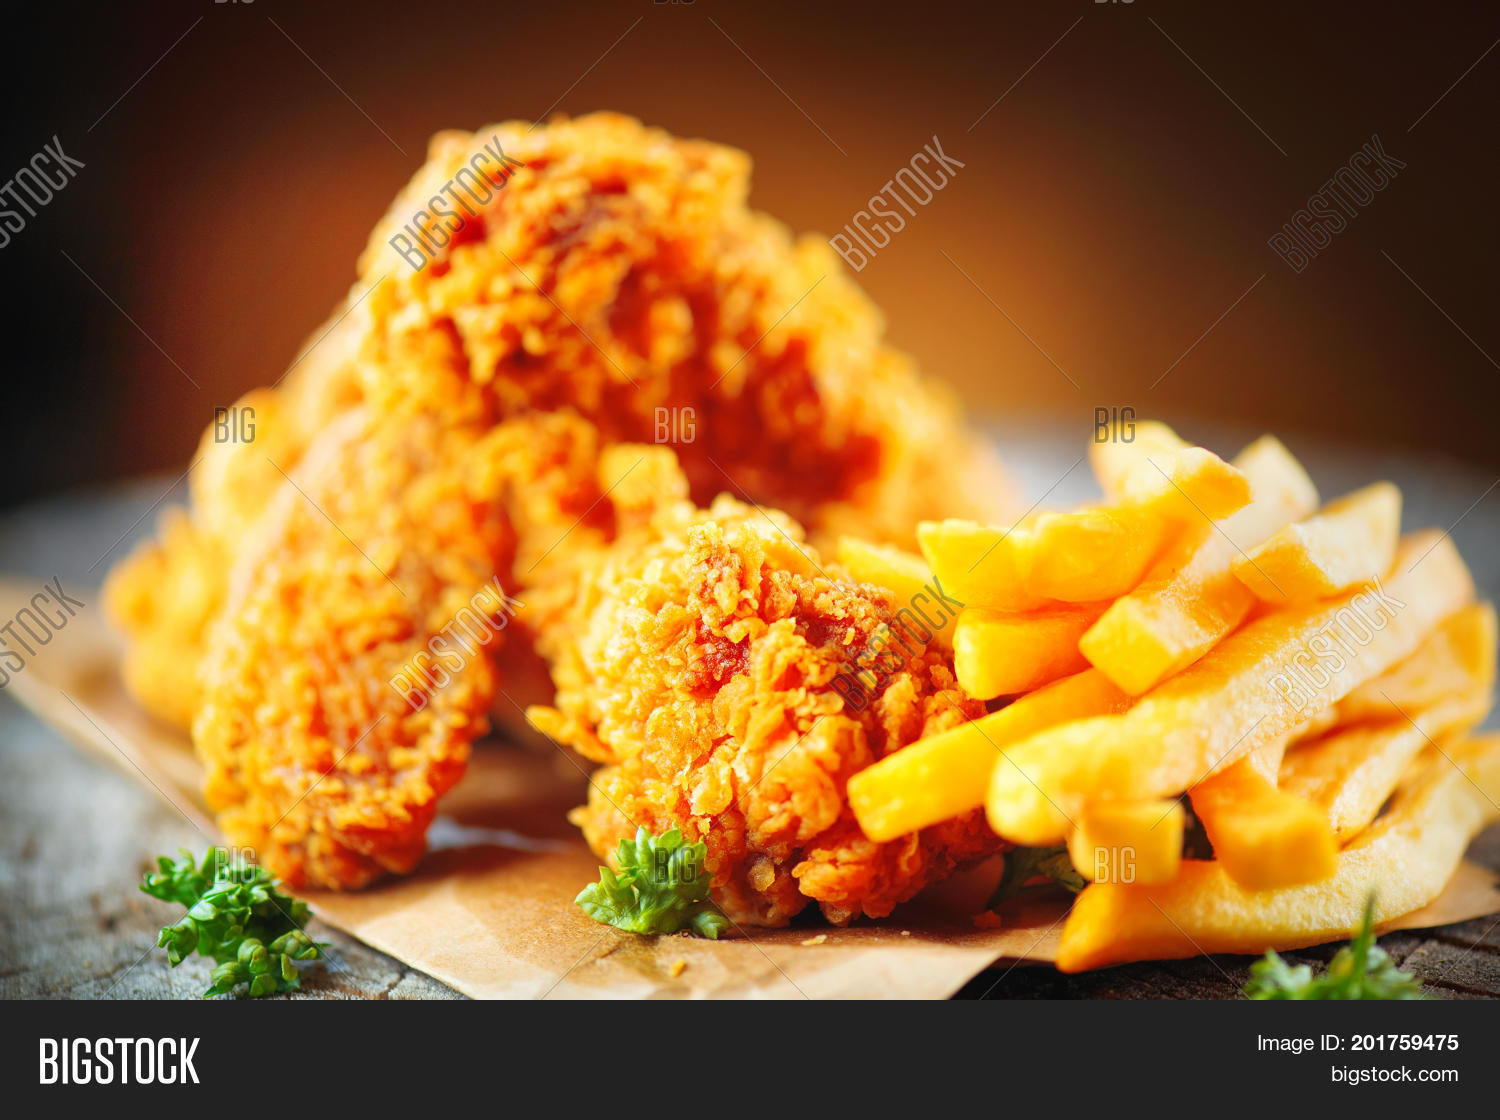 Fried chicken wings image photo free trial bigstock - Kentucky french chicken ...